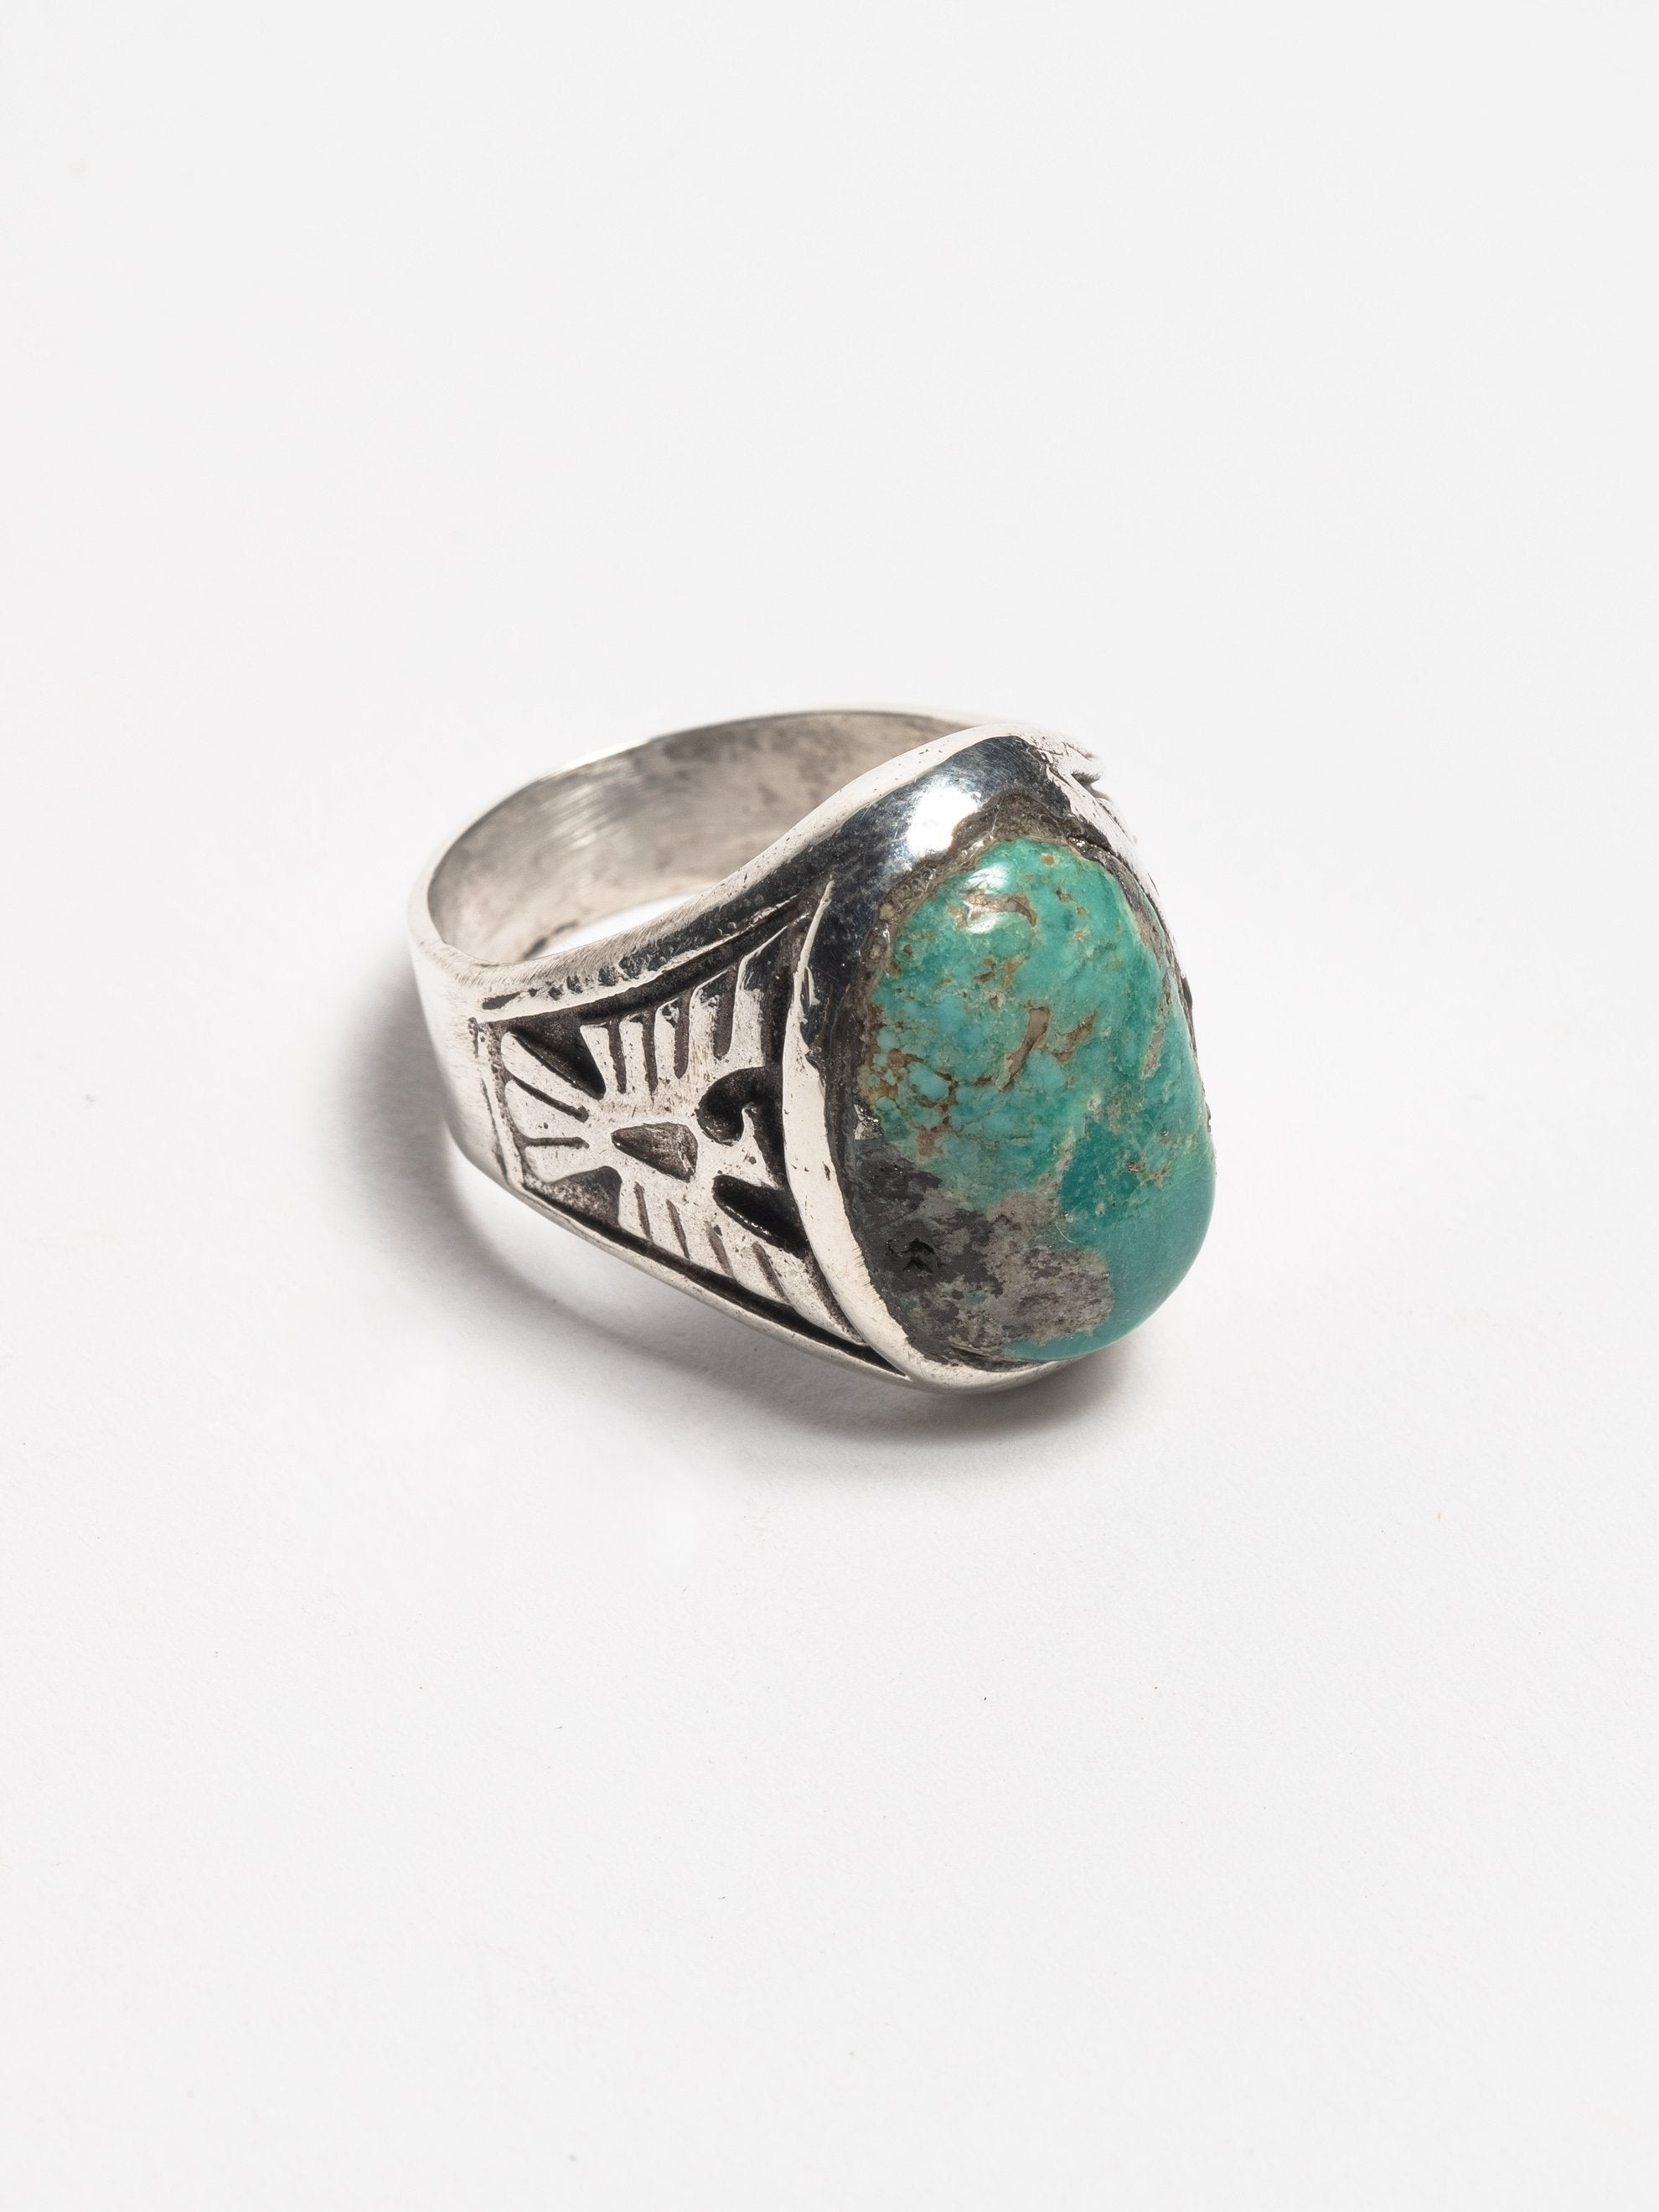 Sterling Silver Vintage 1950's Navajo Sterling Silver Men's Ring with inset cast thunderbirds and early Morenci turquoise stone 2